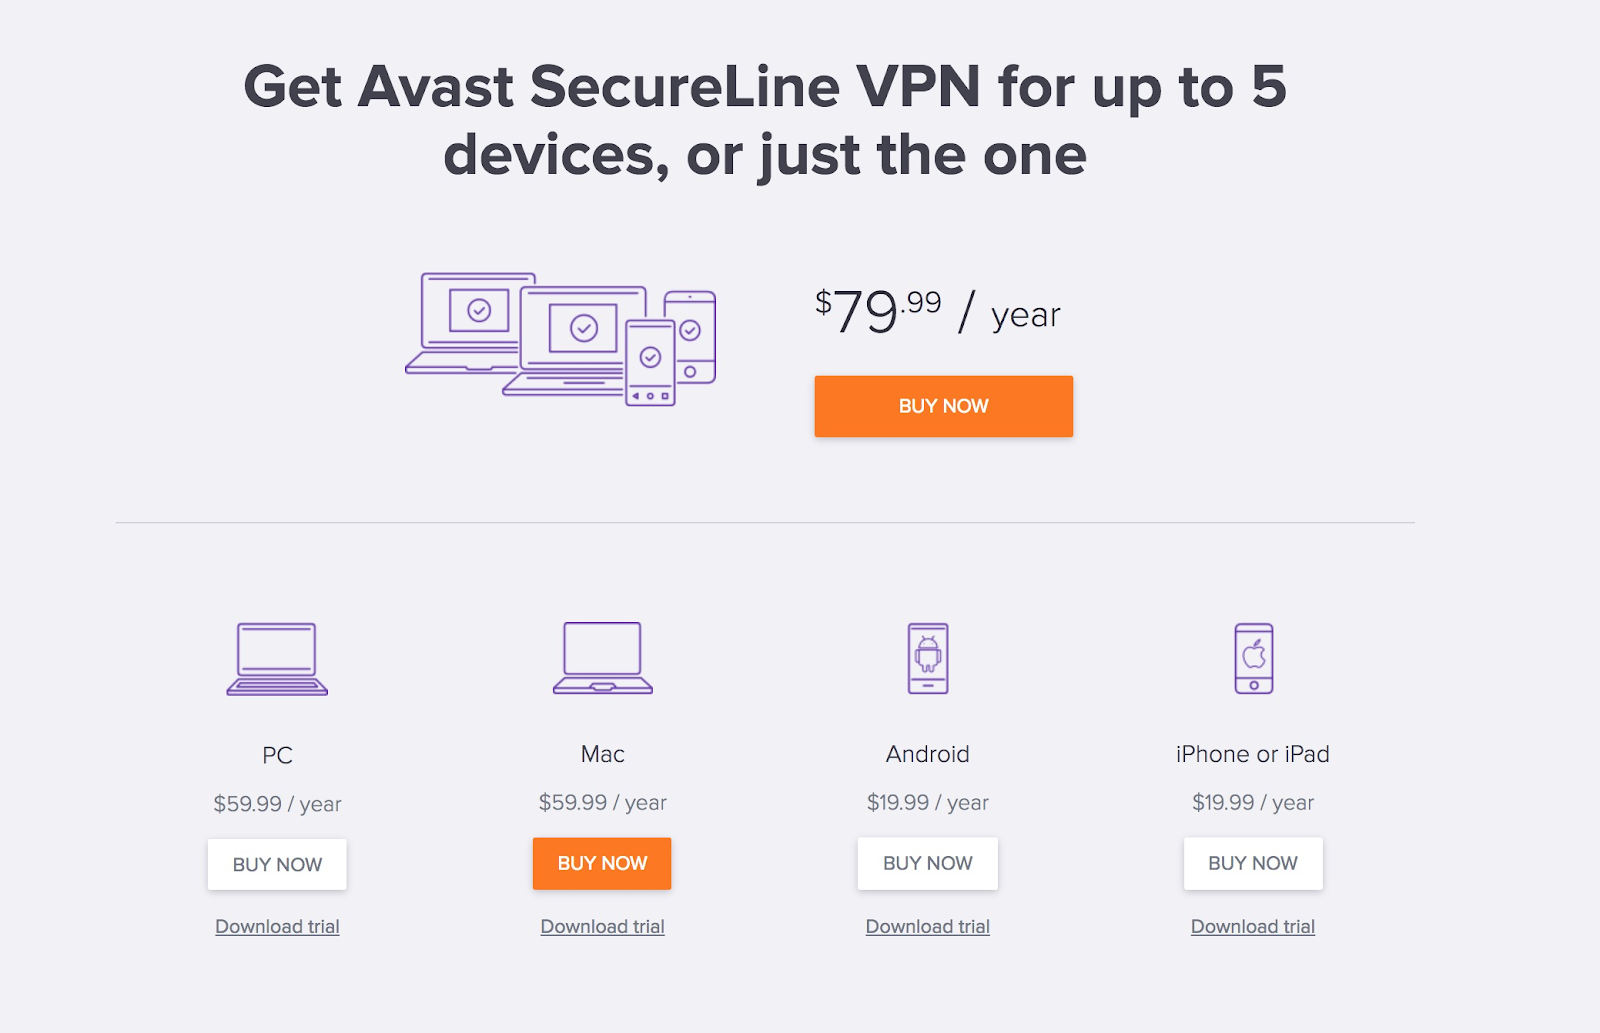 will avast vpn work